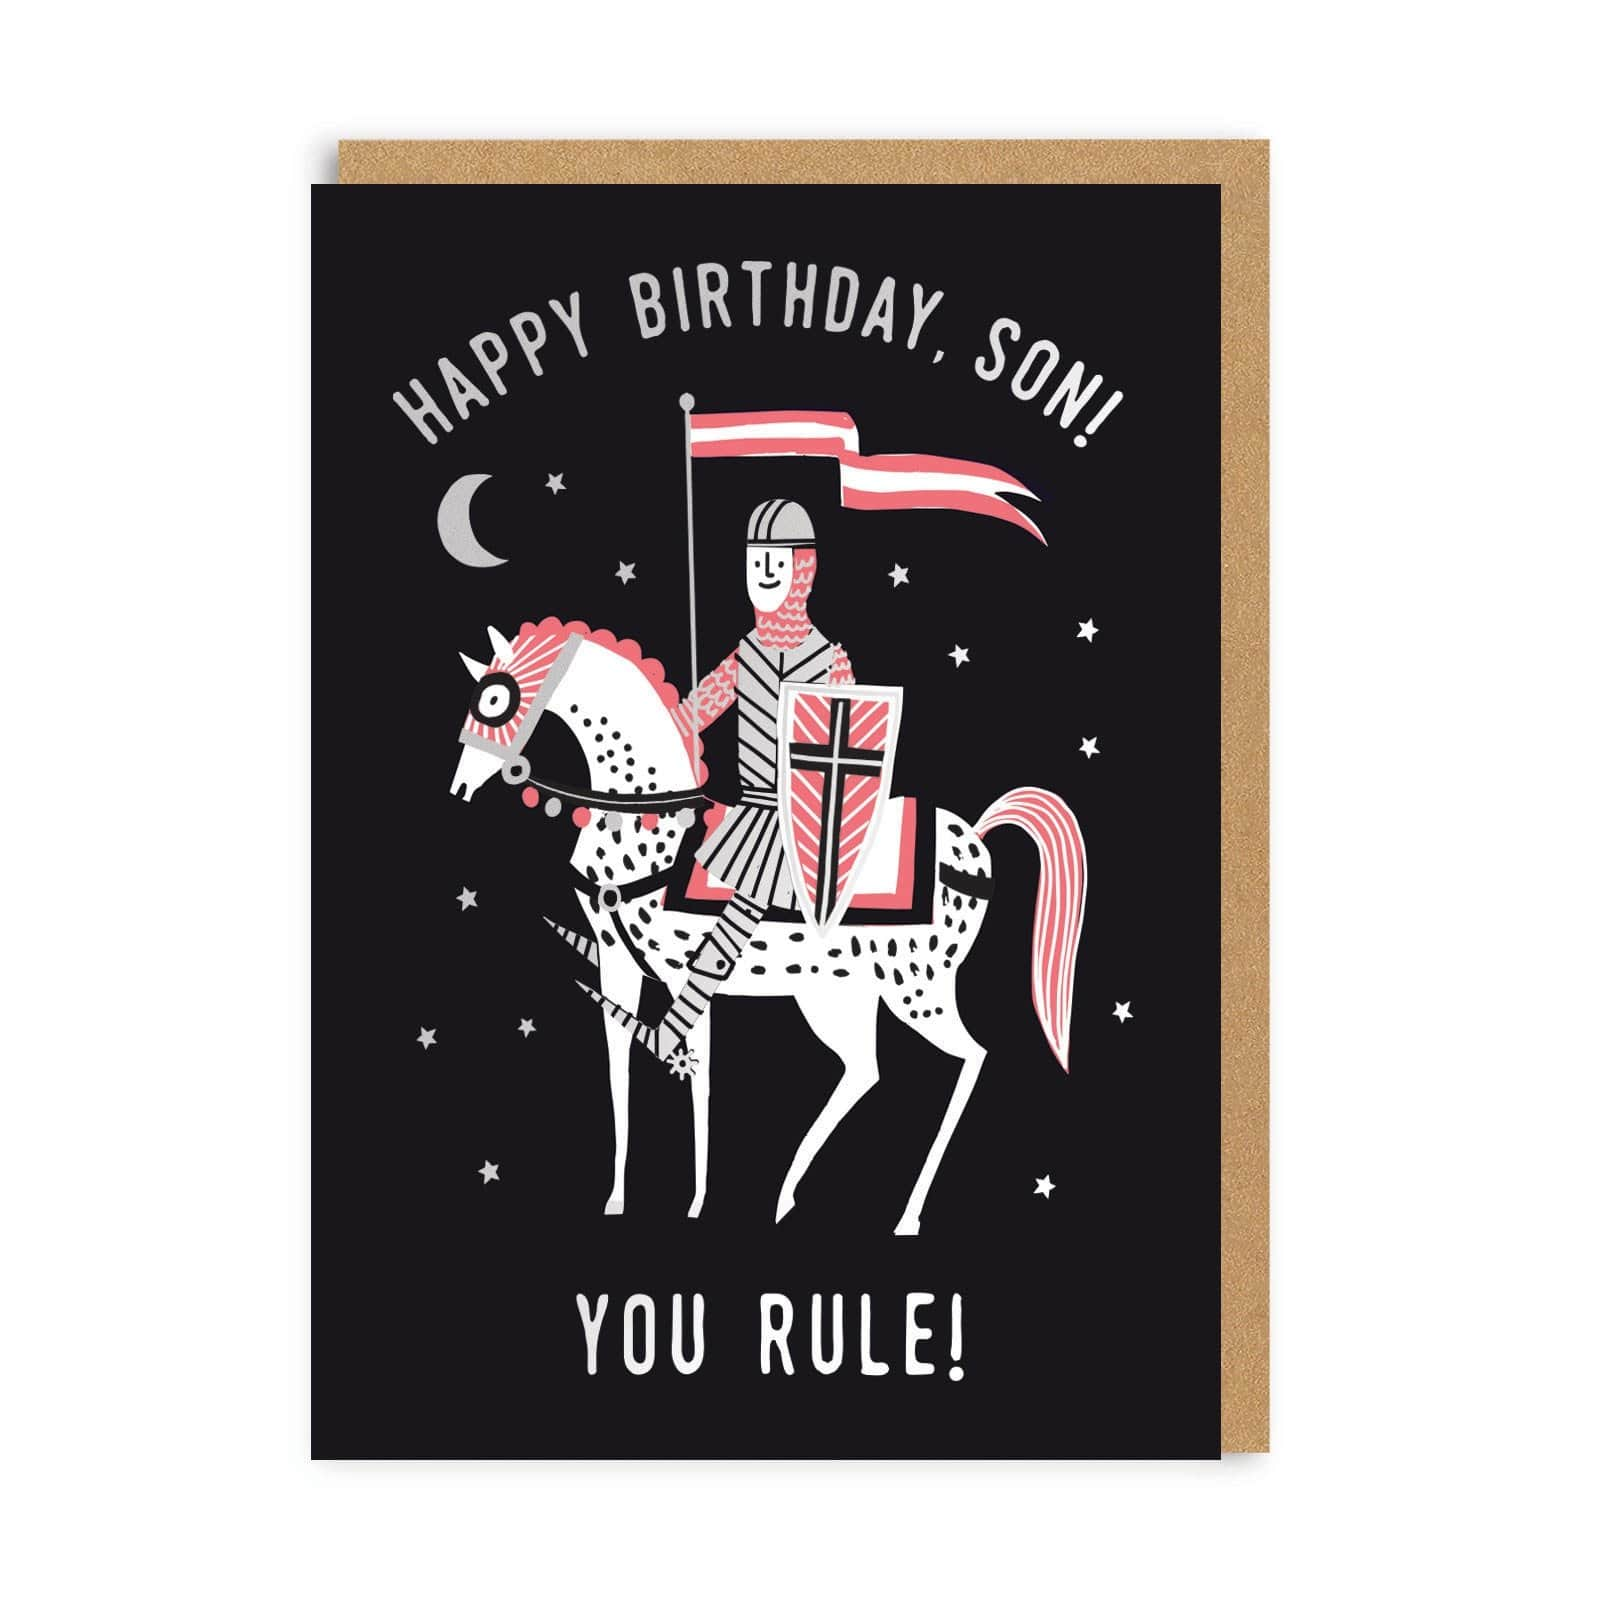 Son You Rule! Happy Birthday Greeting Card